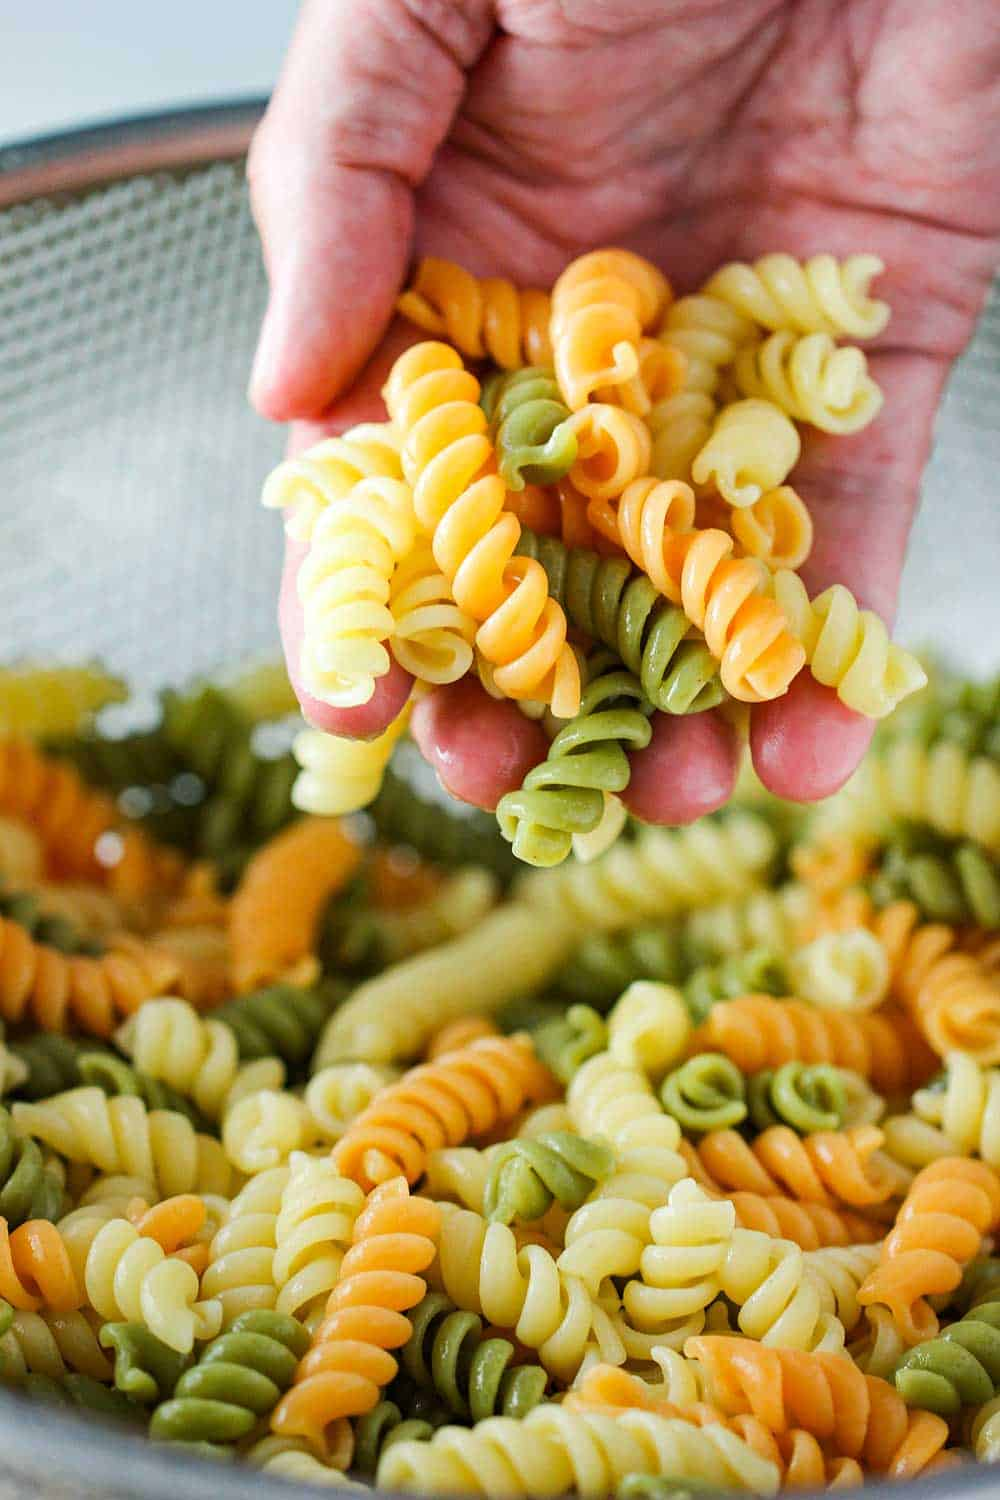 A hand holding tricolor cooked rotini pasta.